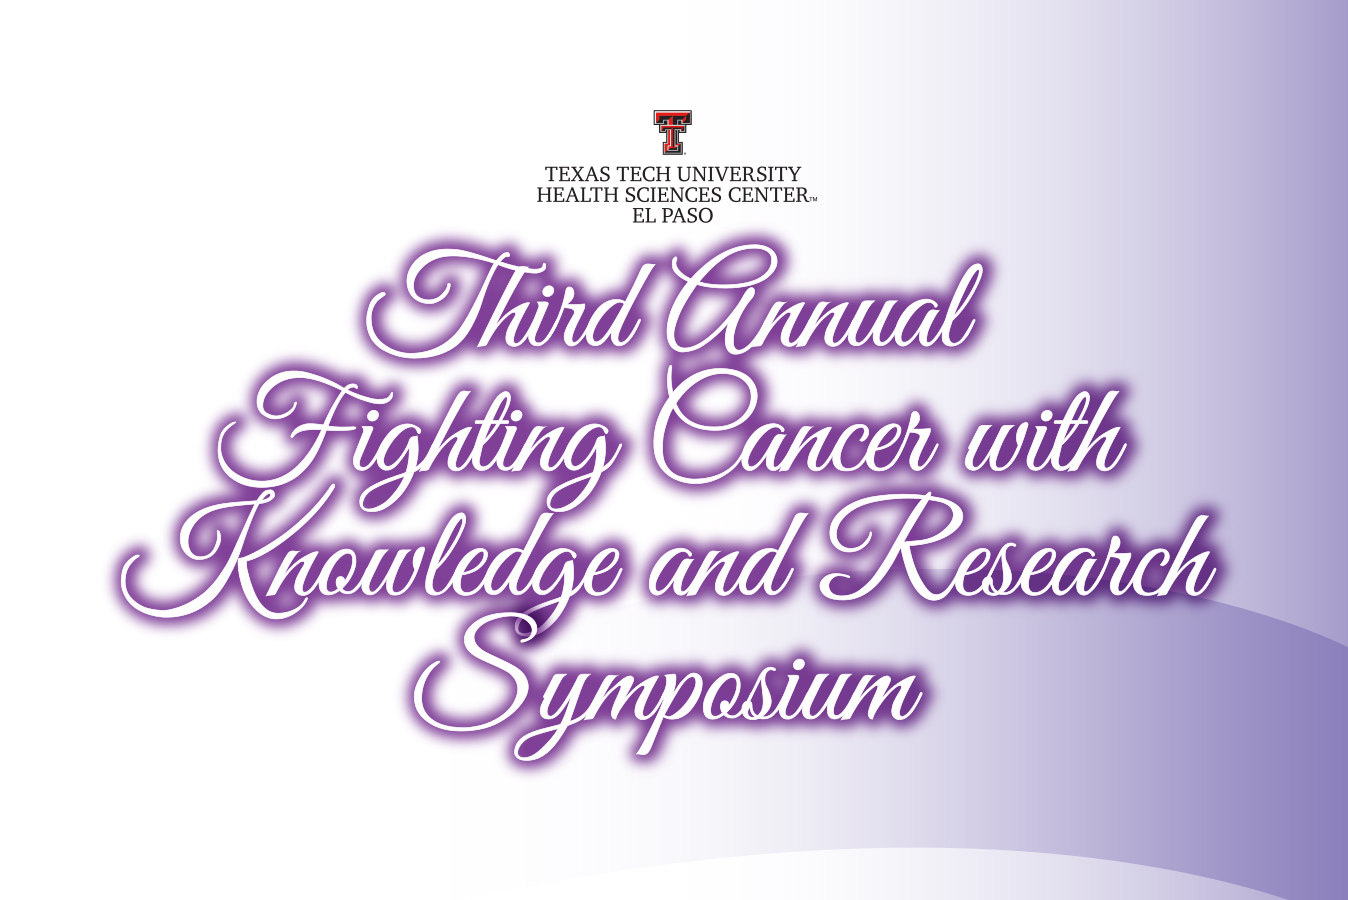 Free Fighting Cancer with Knowledge and Research Symposium